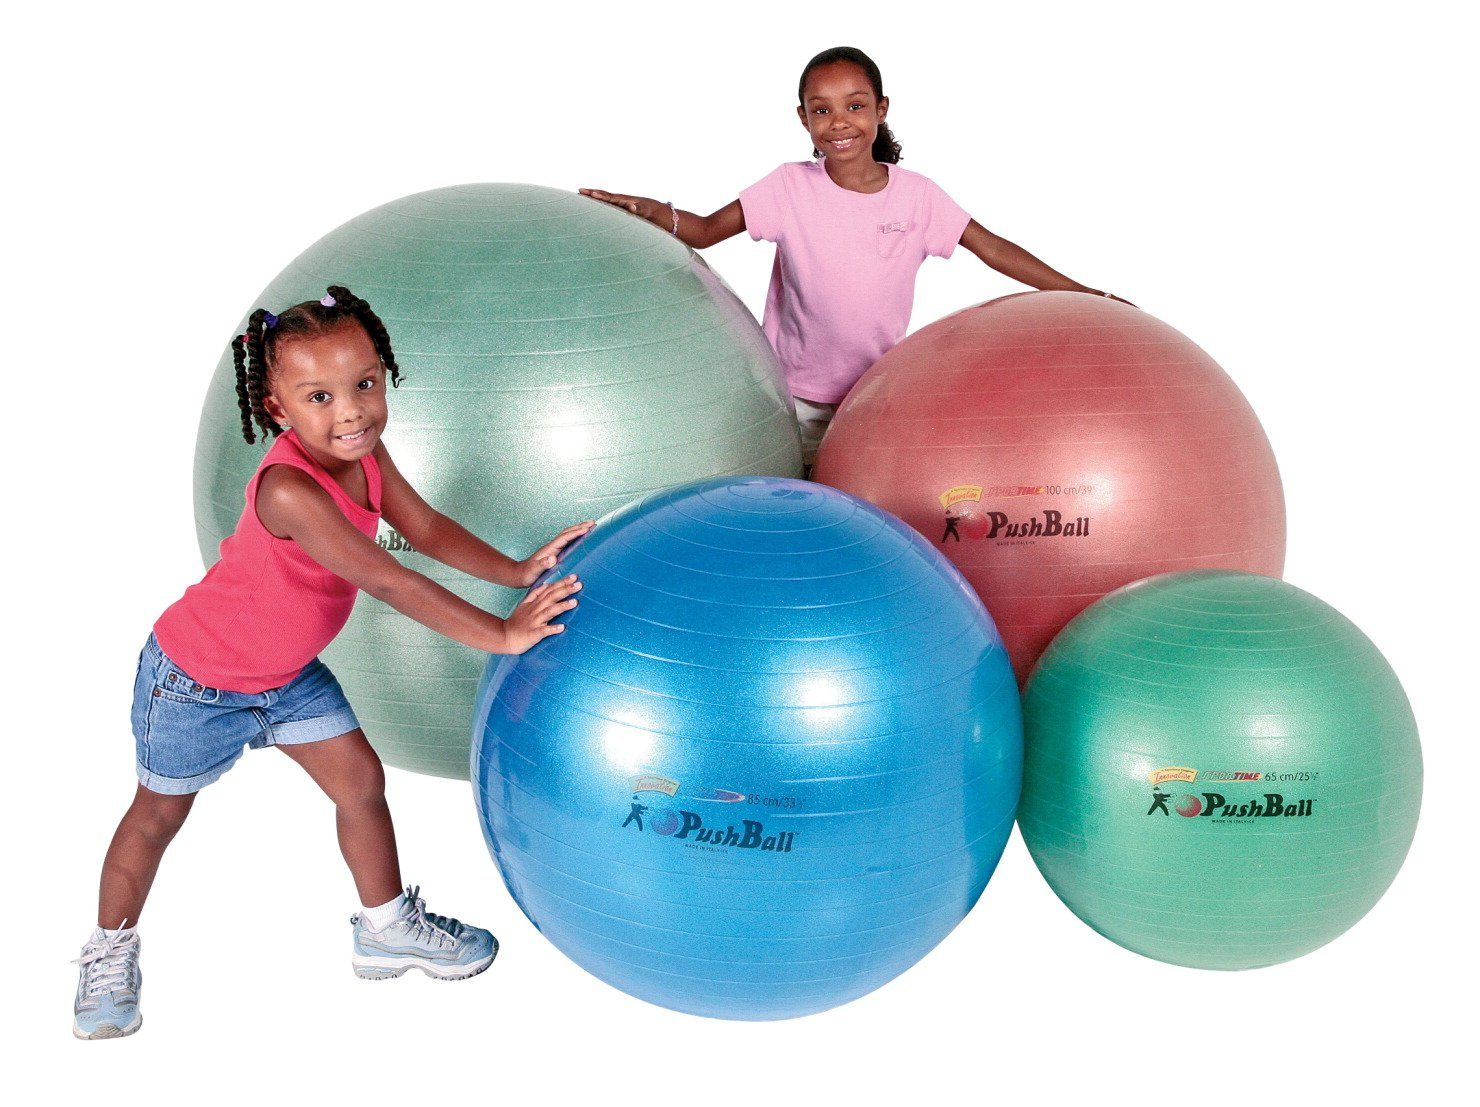 Sportime Ultimax Pushball Therapy Ball - 26 Inches - Green